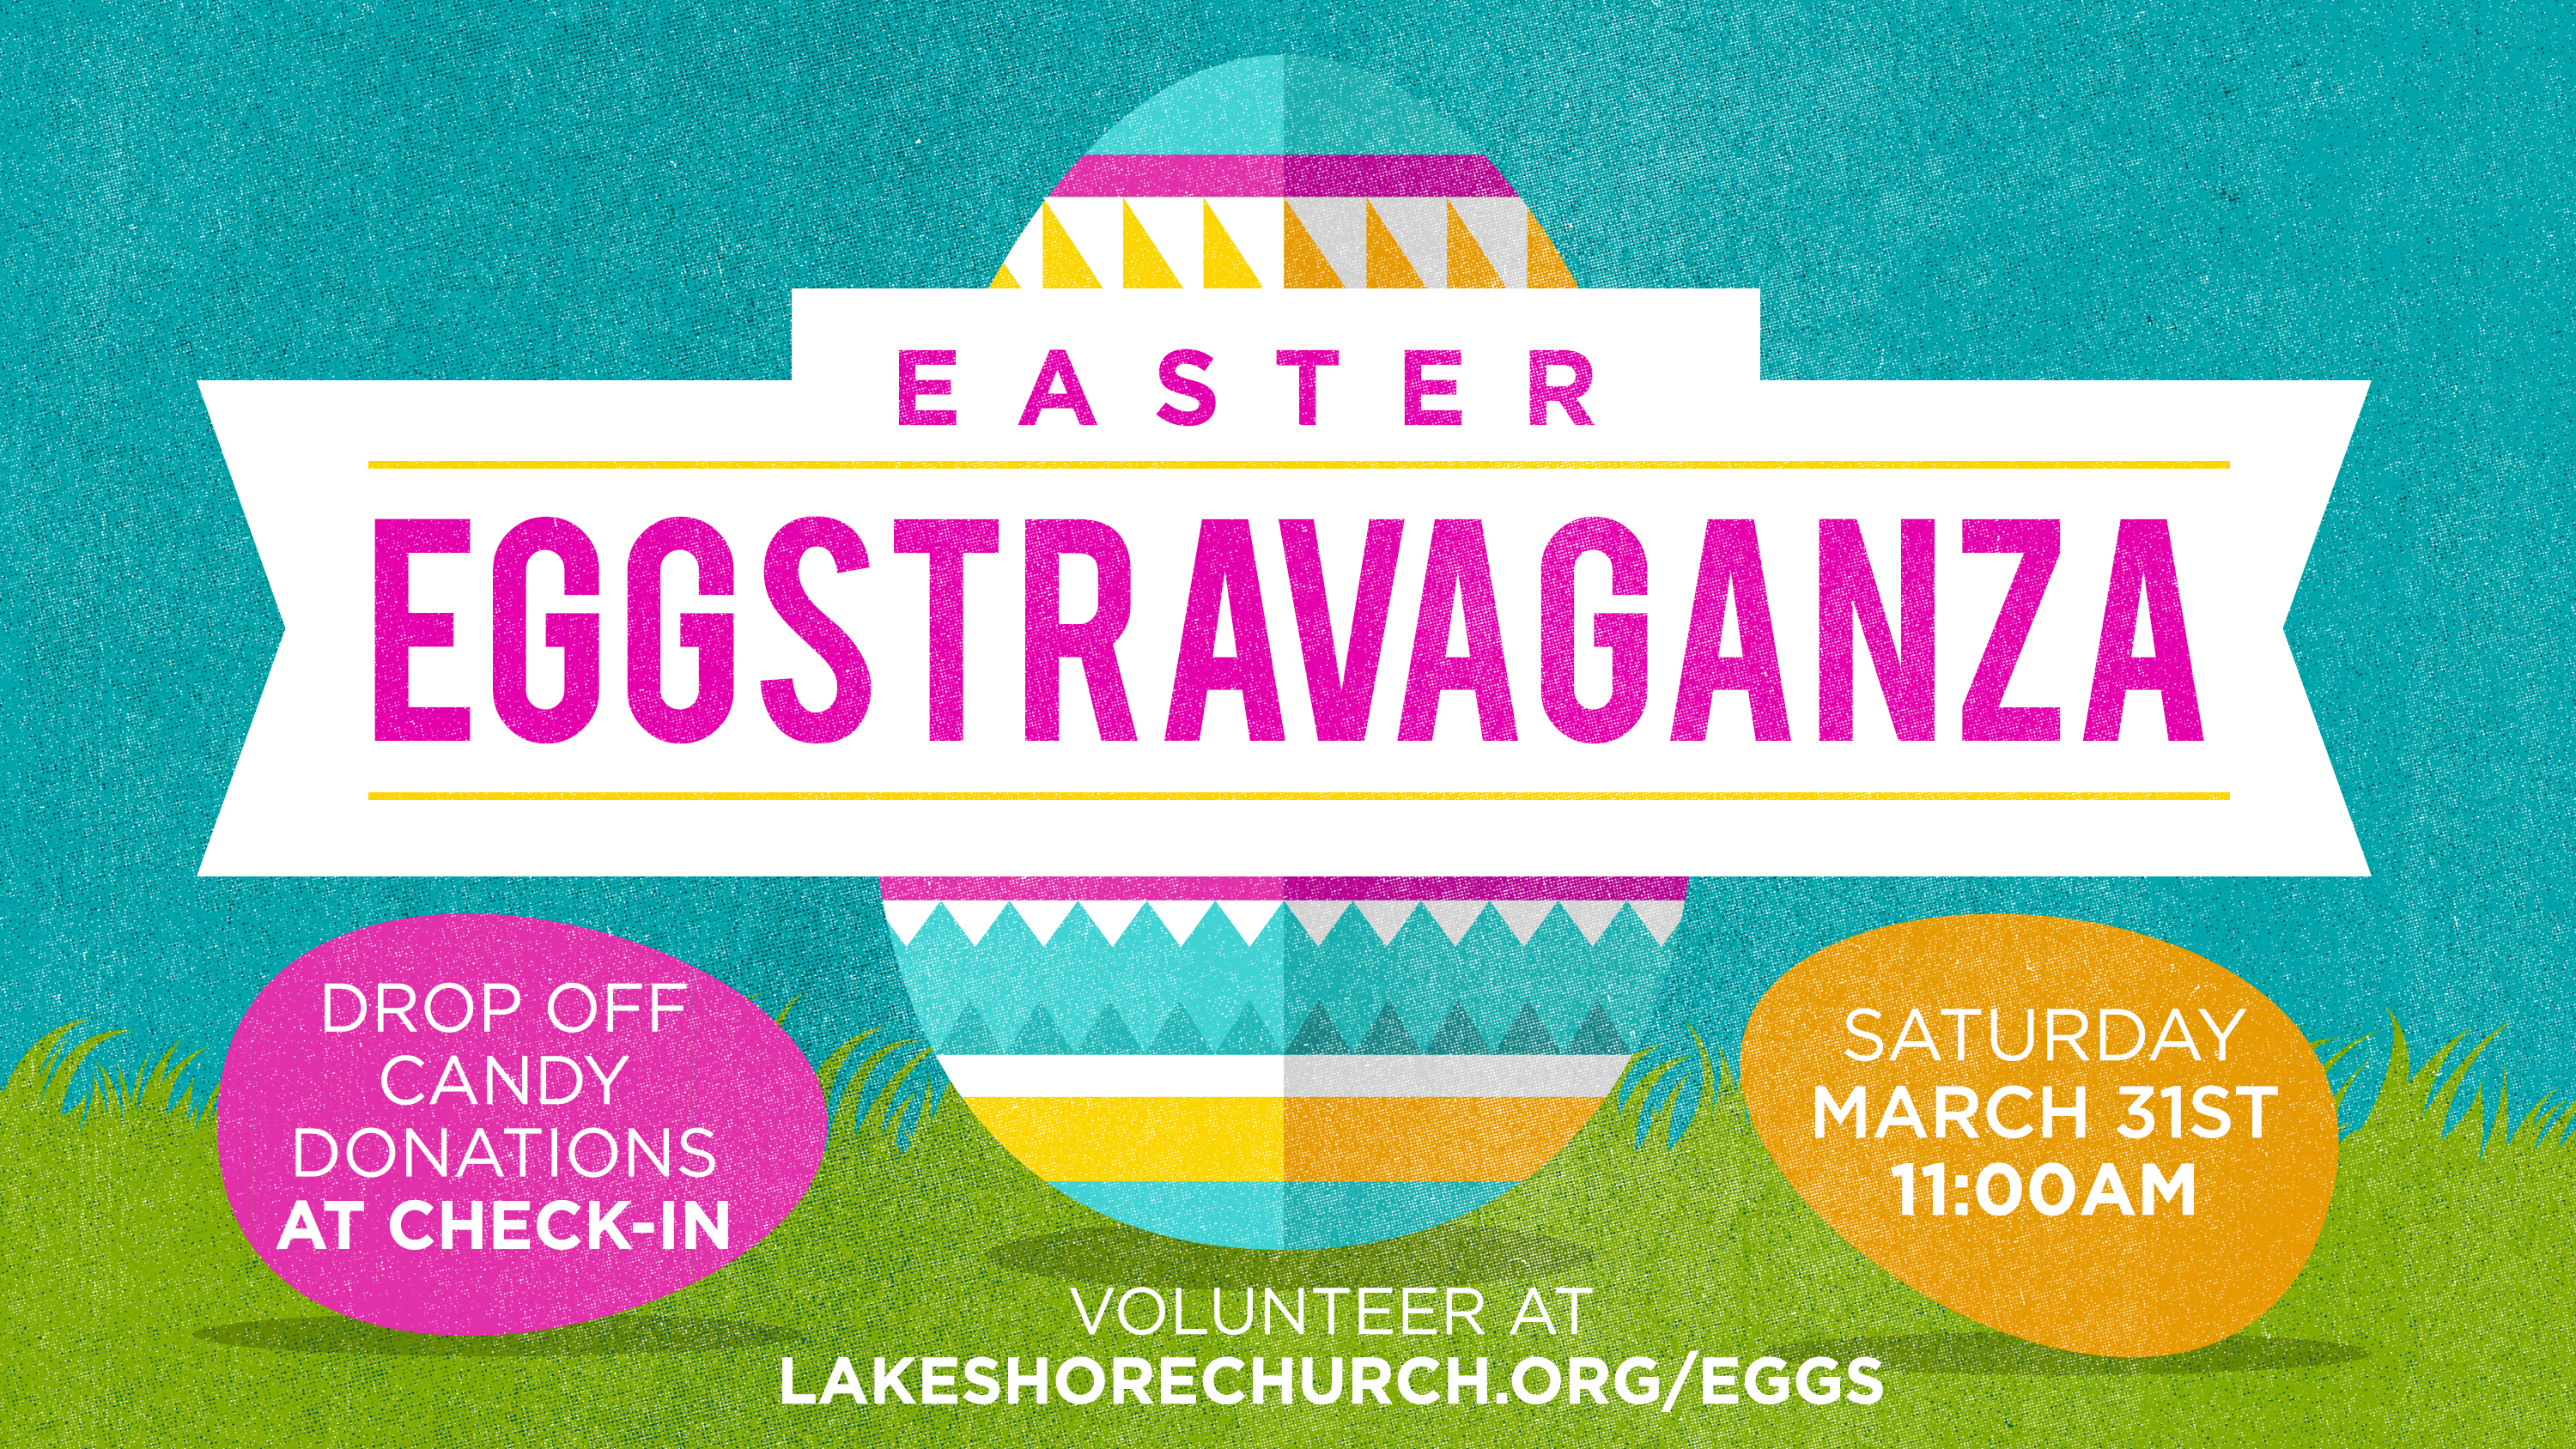 https://www.lakeshorechurch.org/eggs